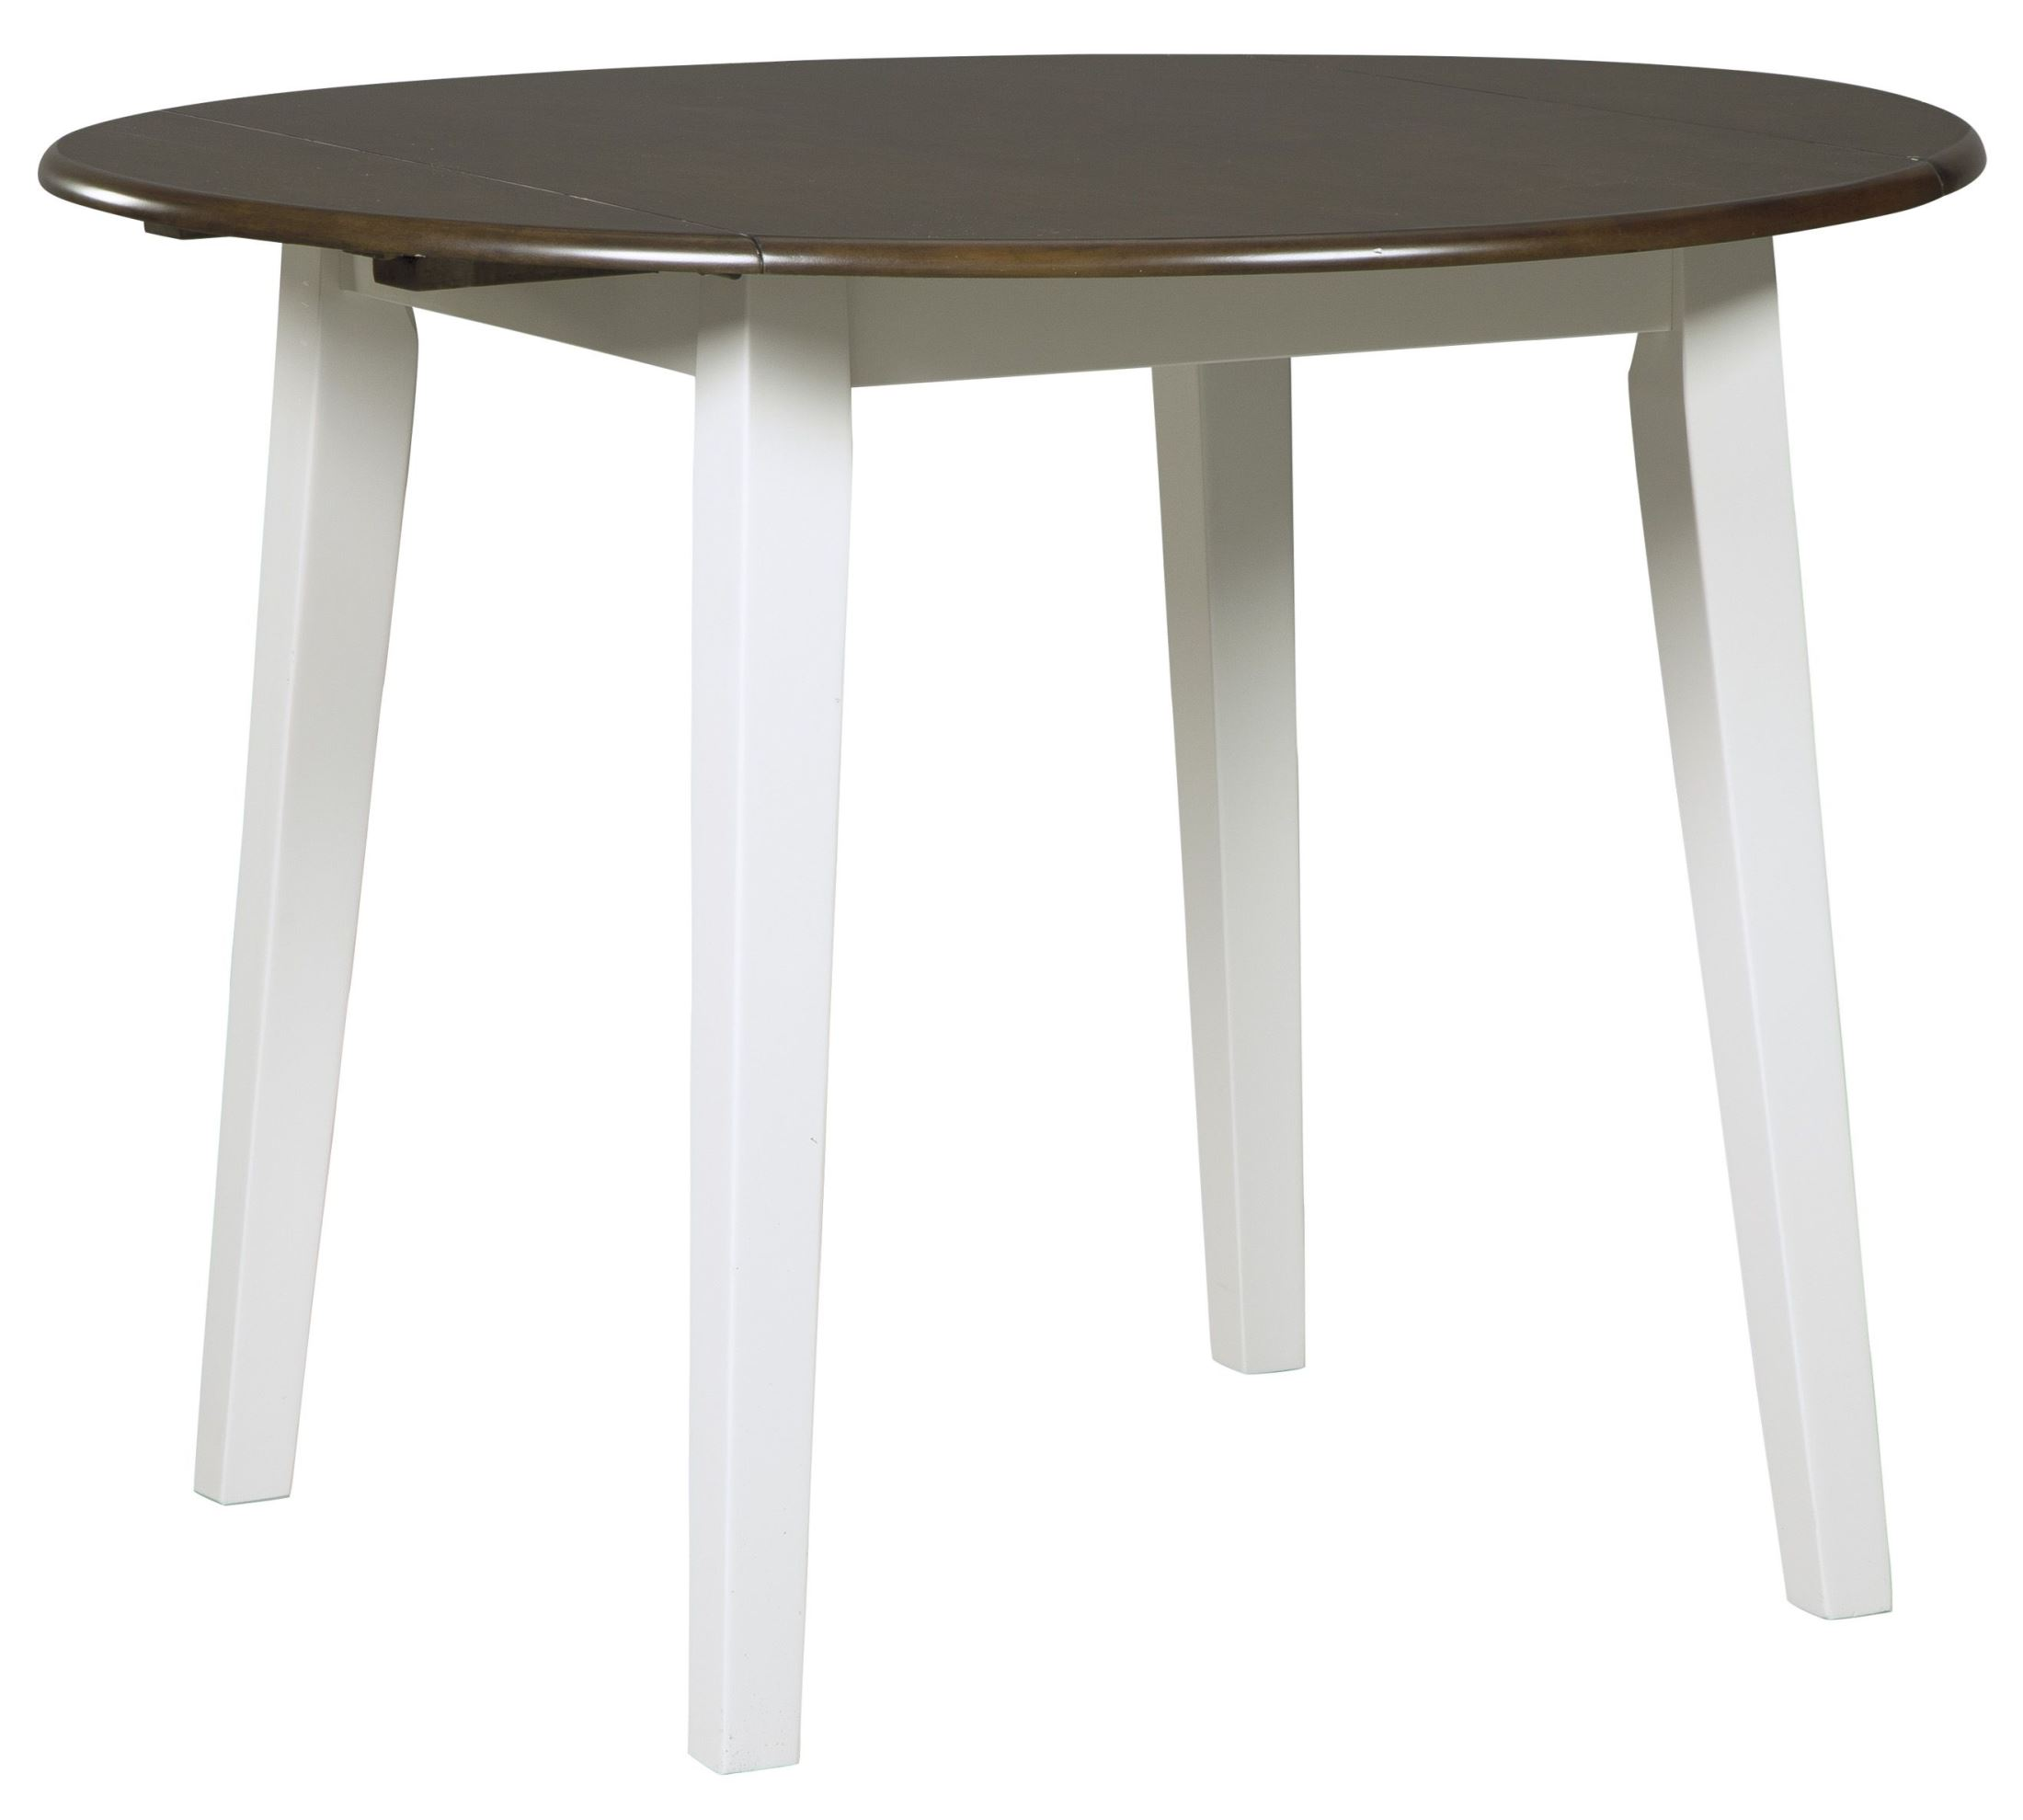 White And Brown Dining Table: Signature Design By Ashley Woodanville White And Brown